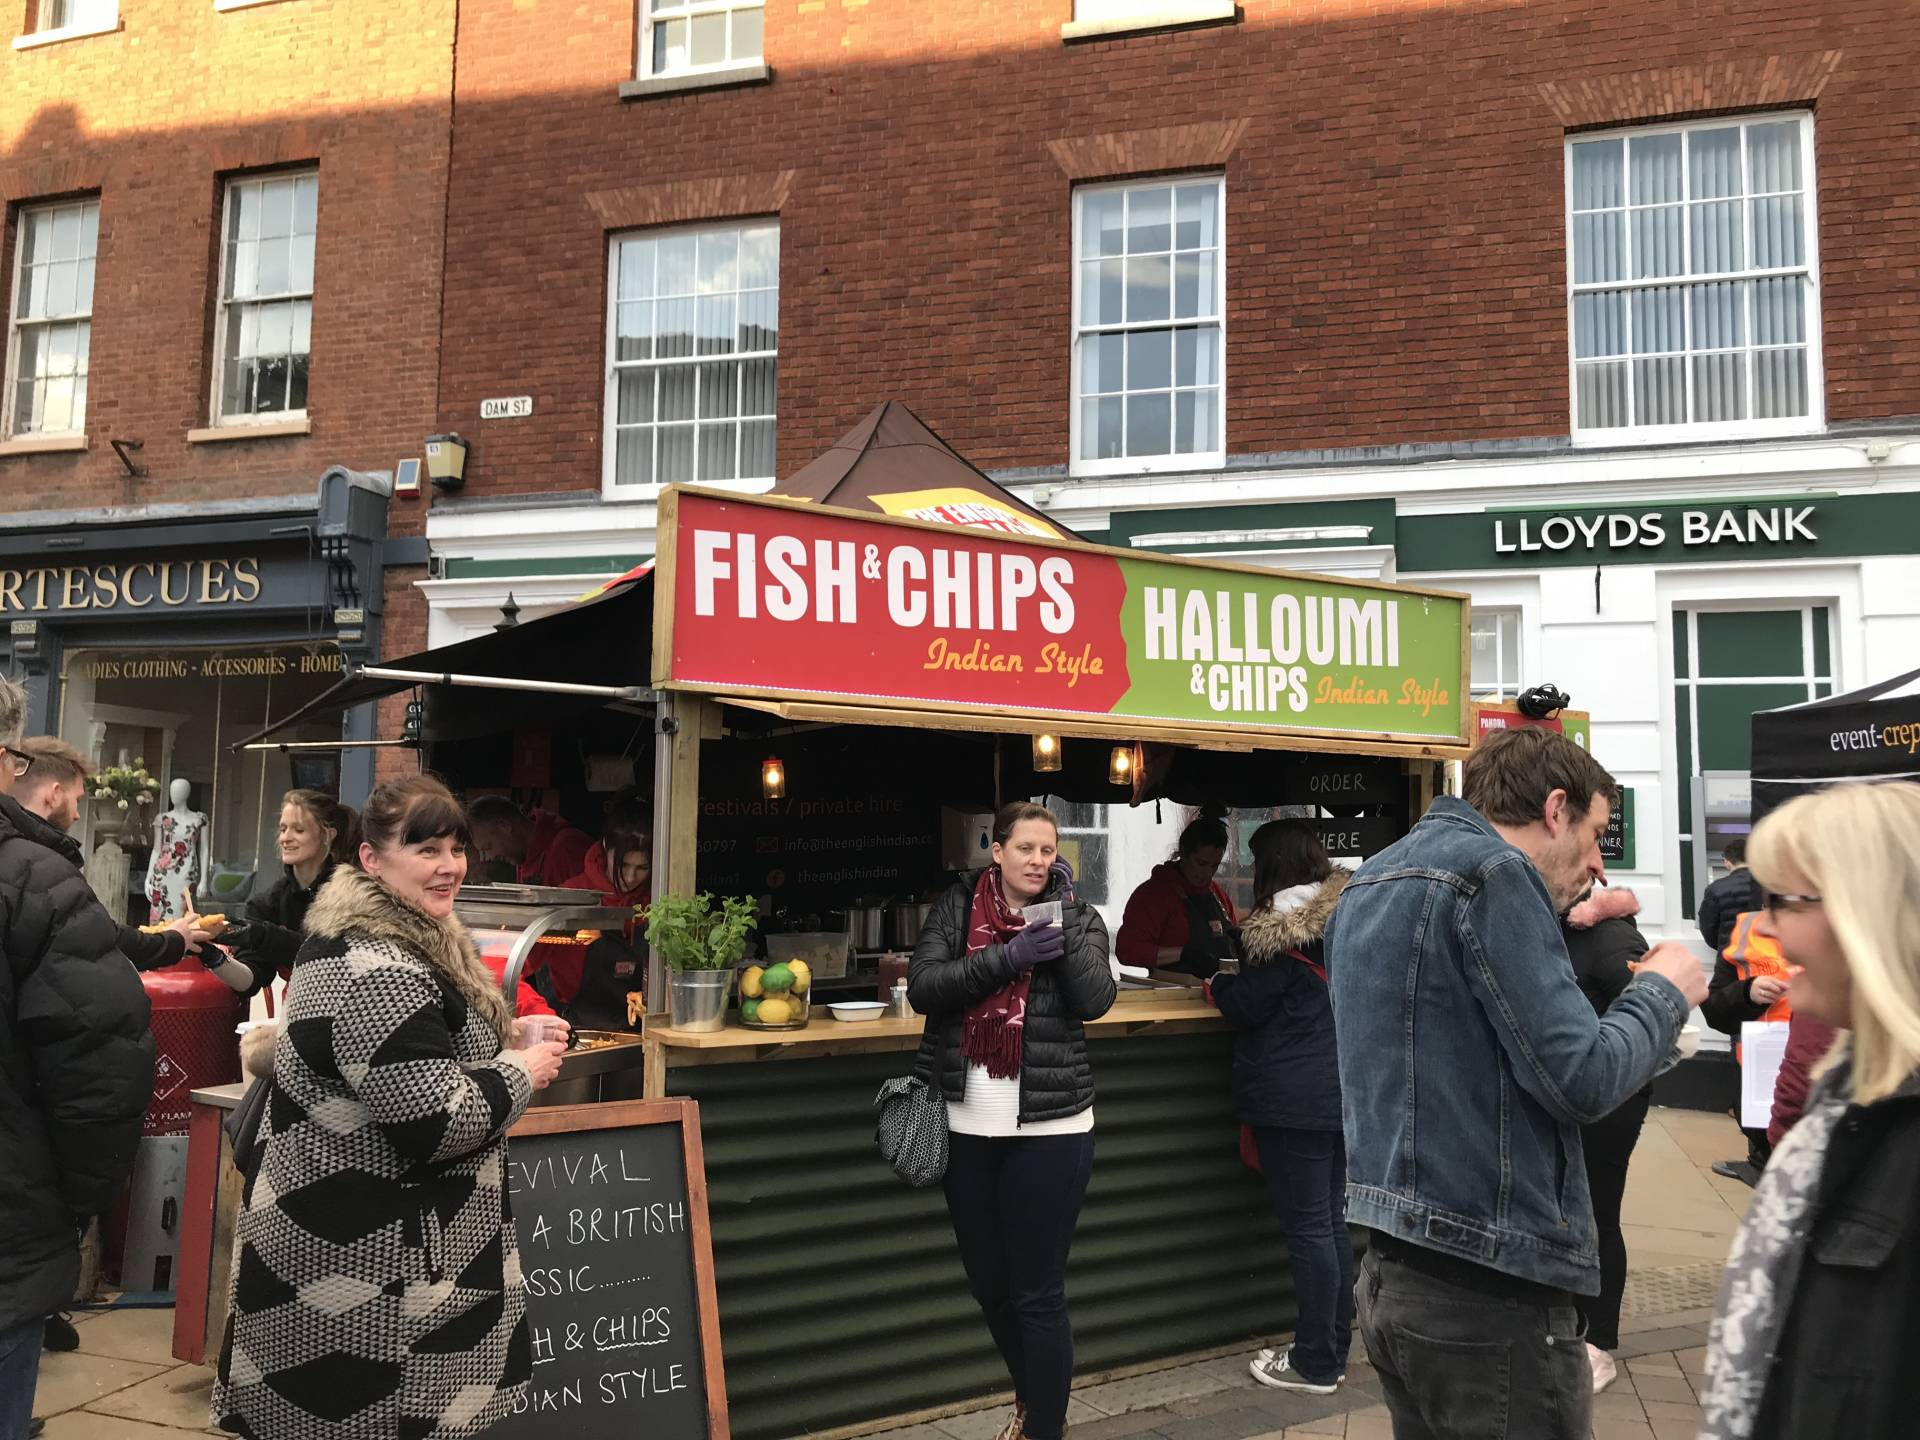 Lichfield Grub Club - Street Food